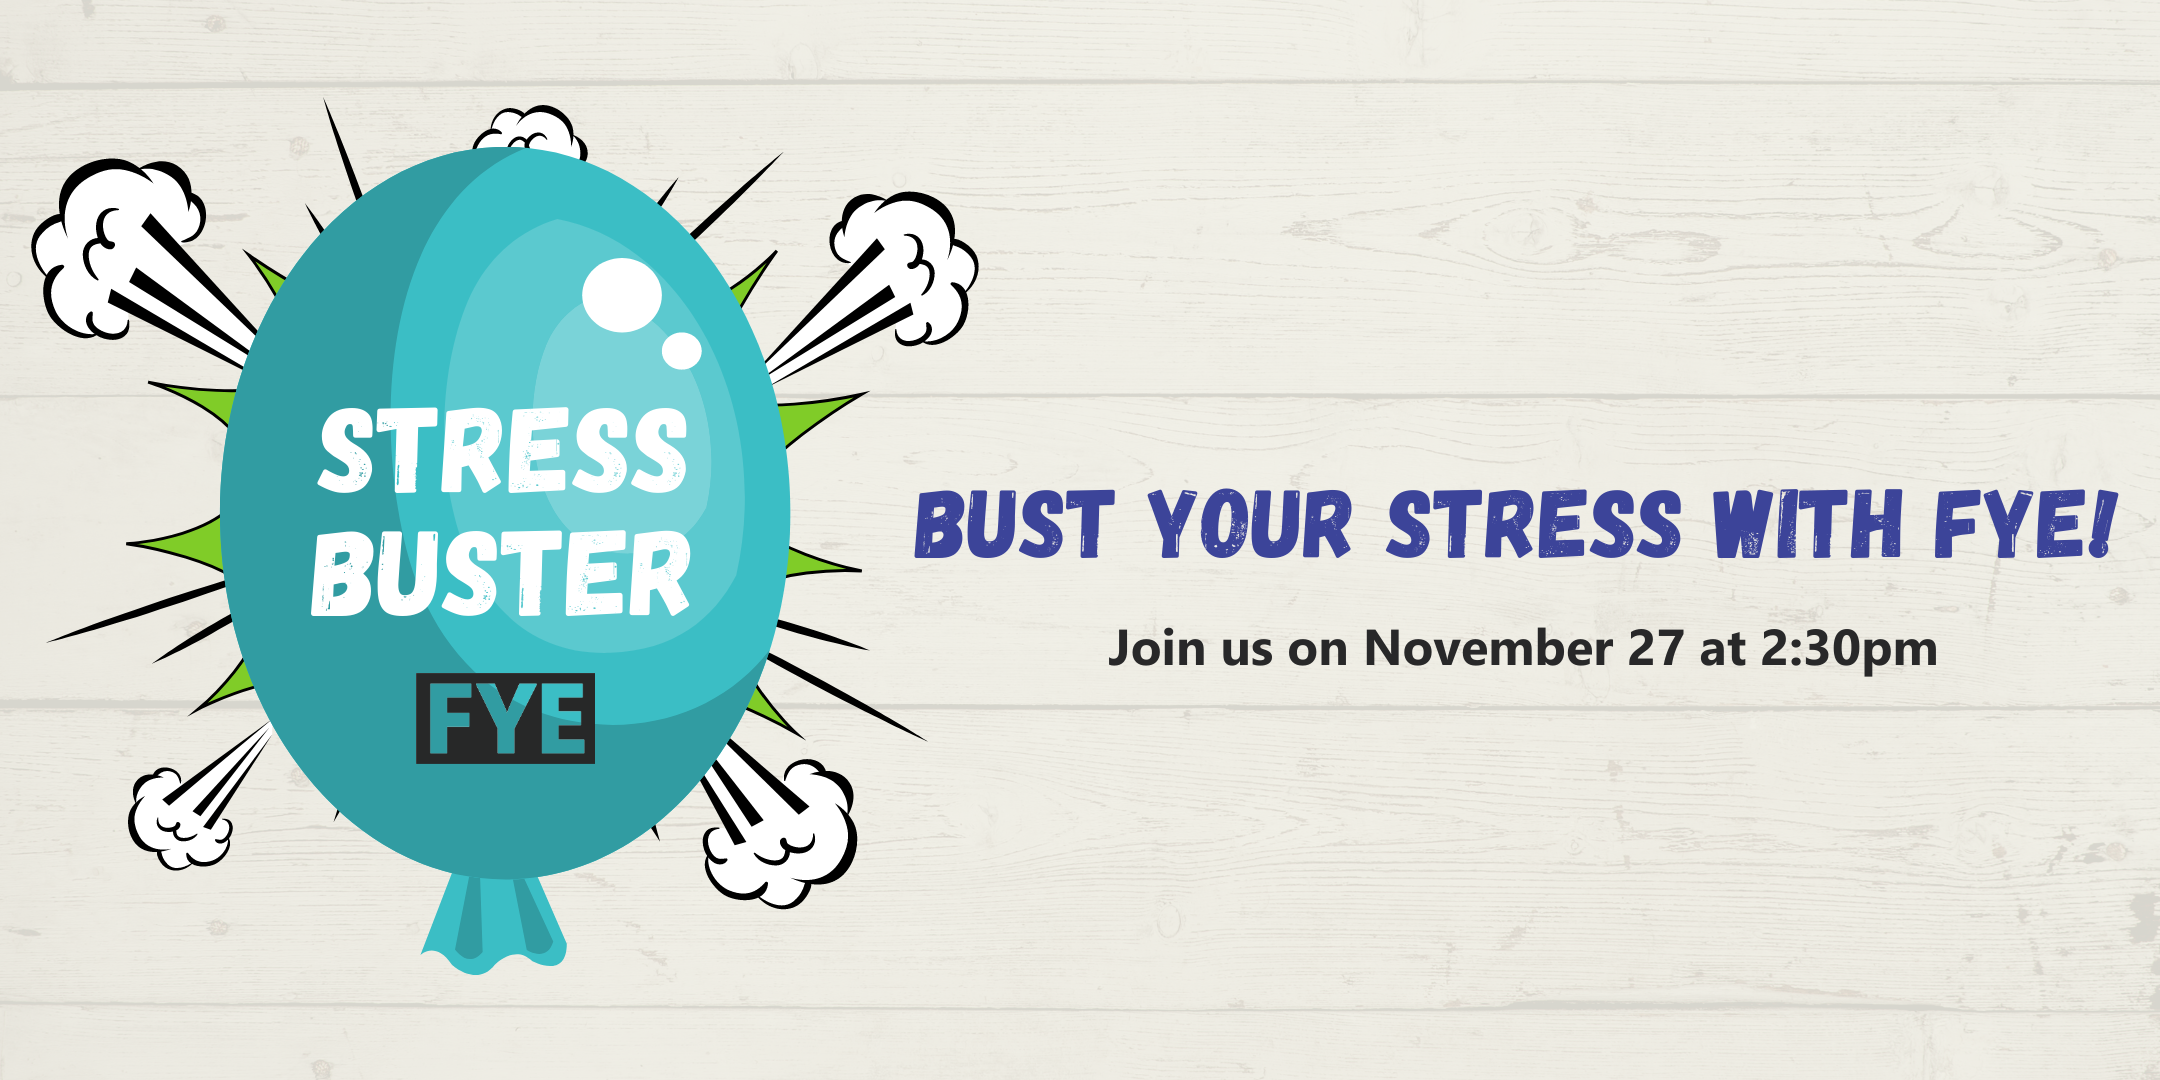 Bust Your Stress With FYE - November 27 at 2:30 pm